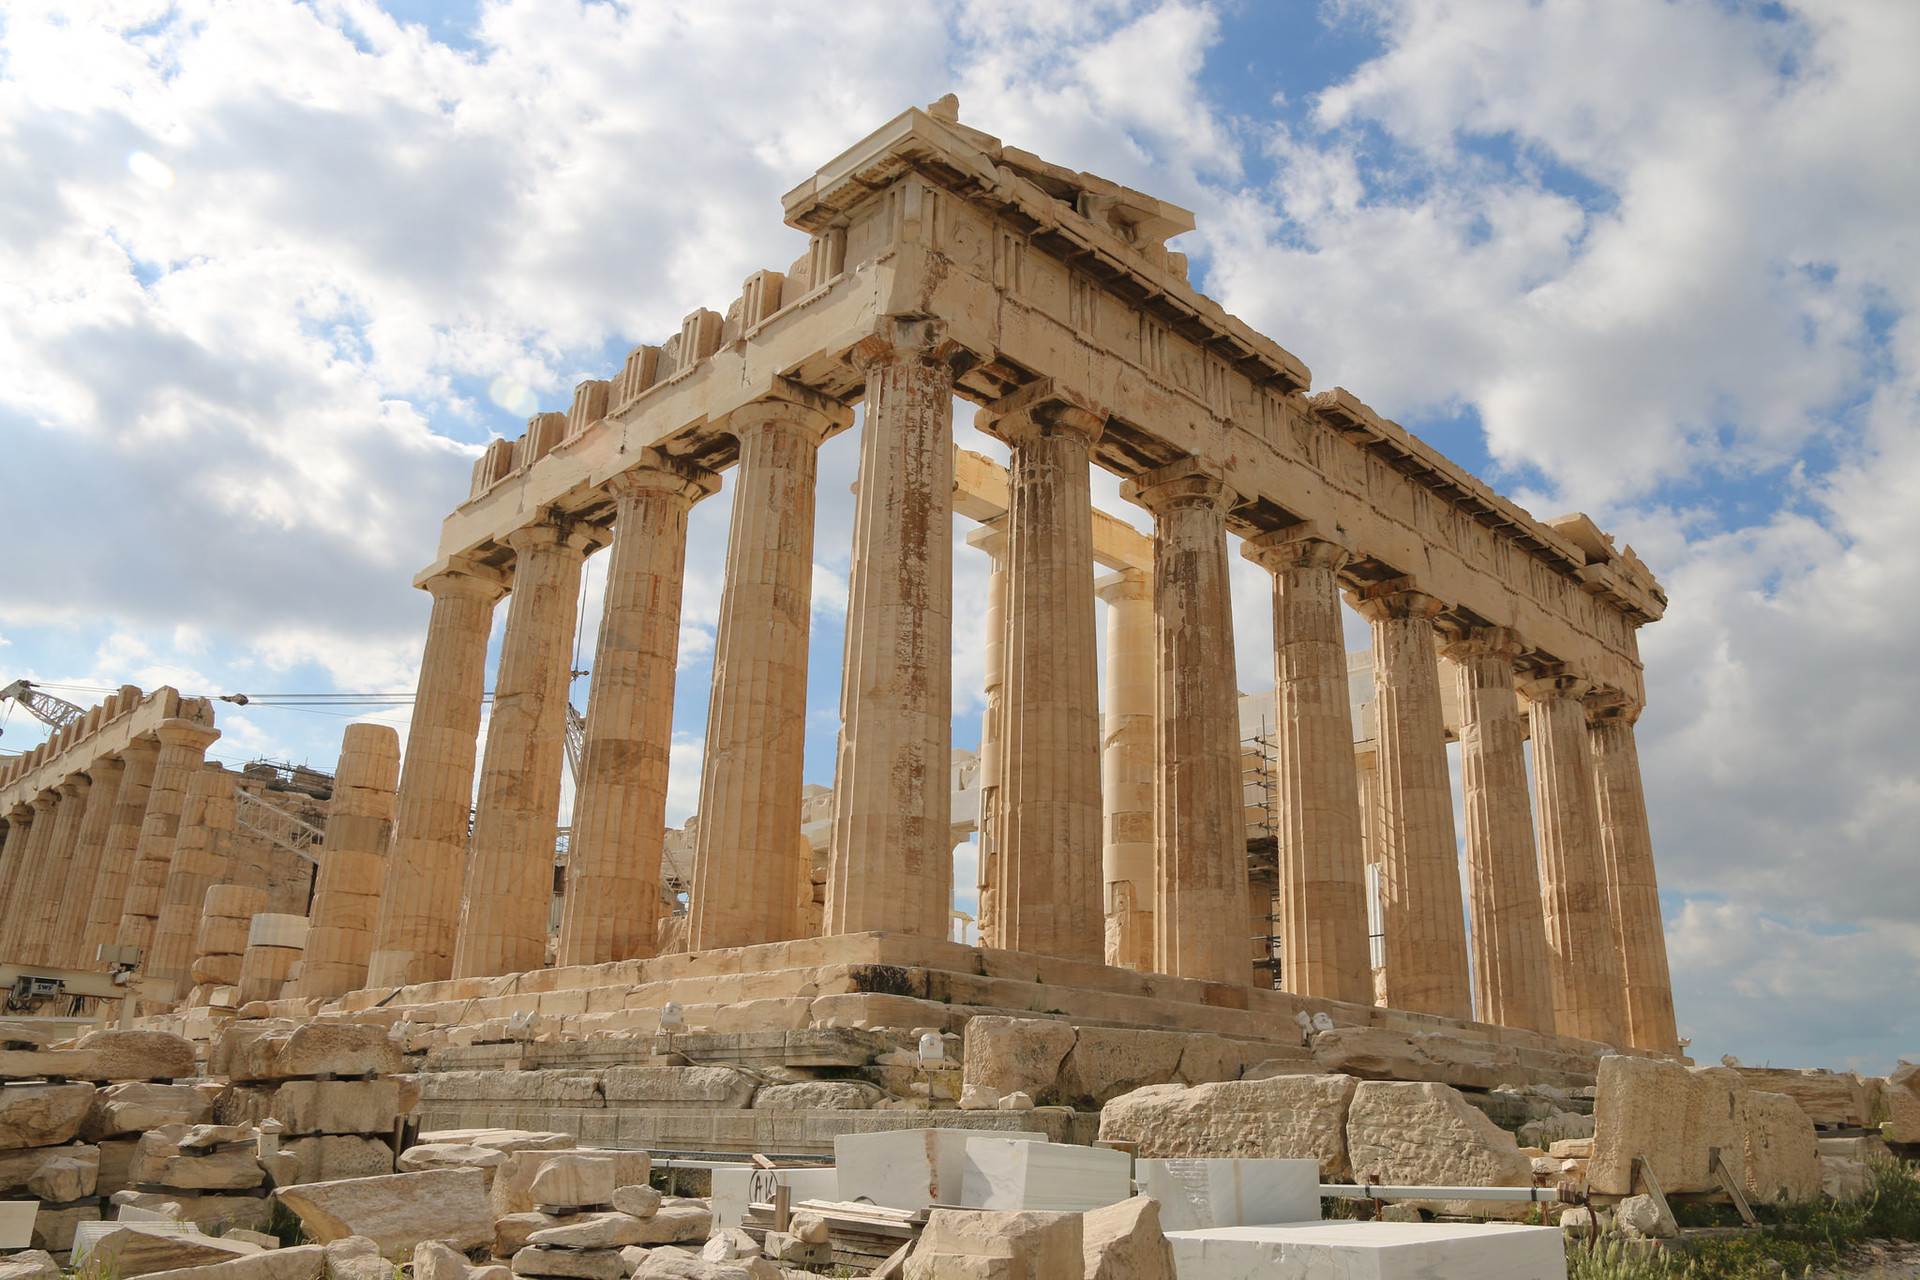 athens-travel-tips-bb3ee09808a7802191ed5